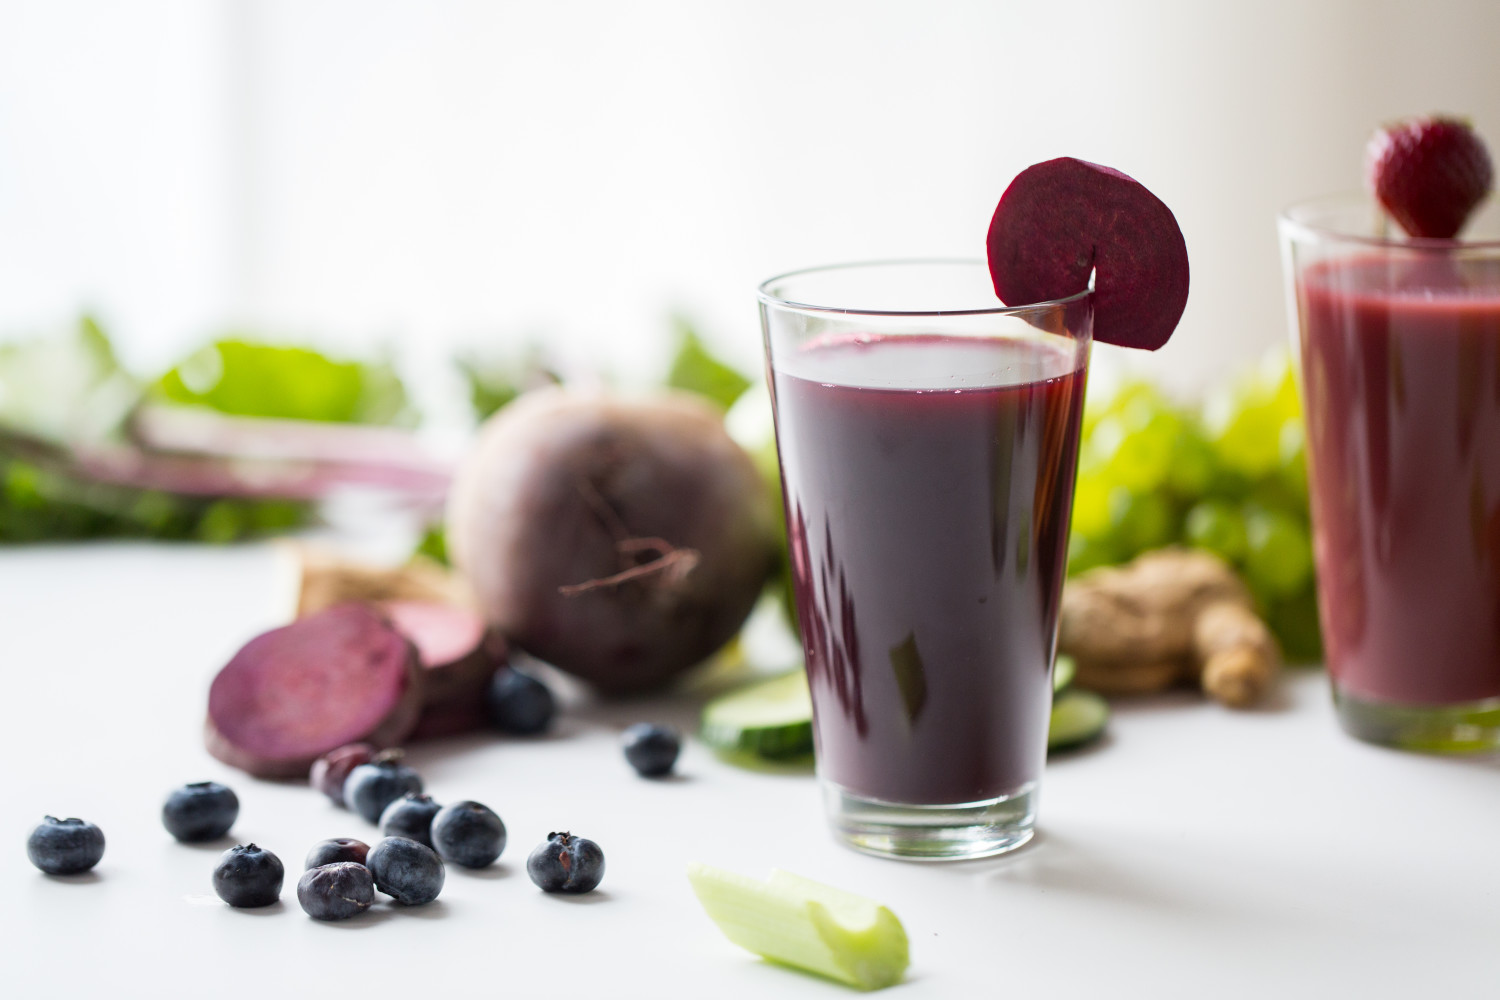 healthy eating, drinks, diet and detox concept - glass of beetroot juice with different fruits and vegetables on table